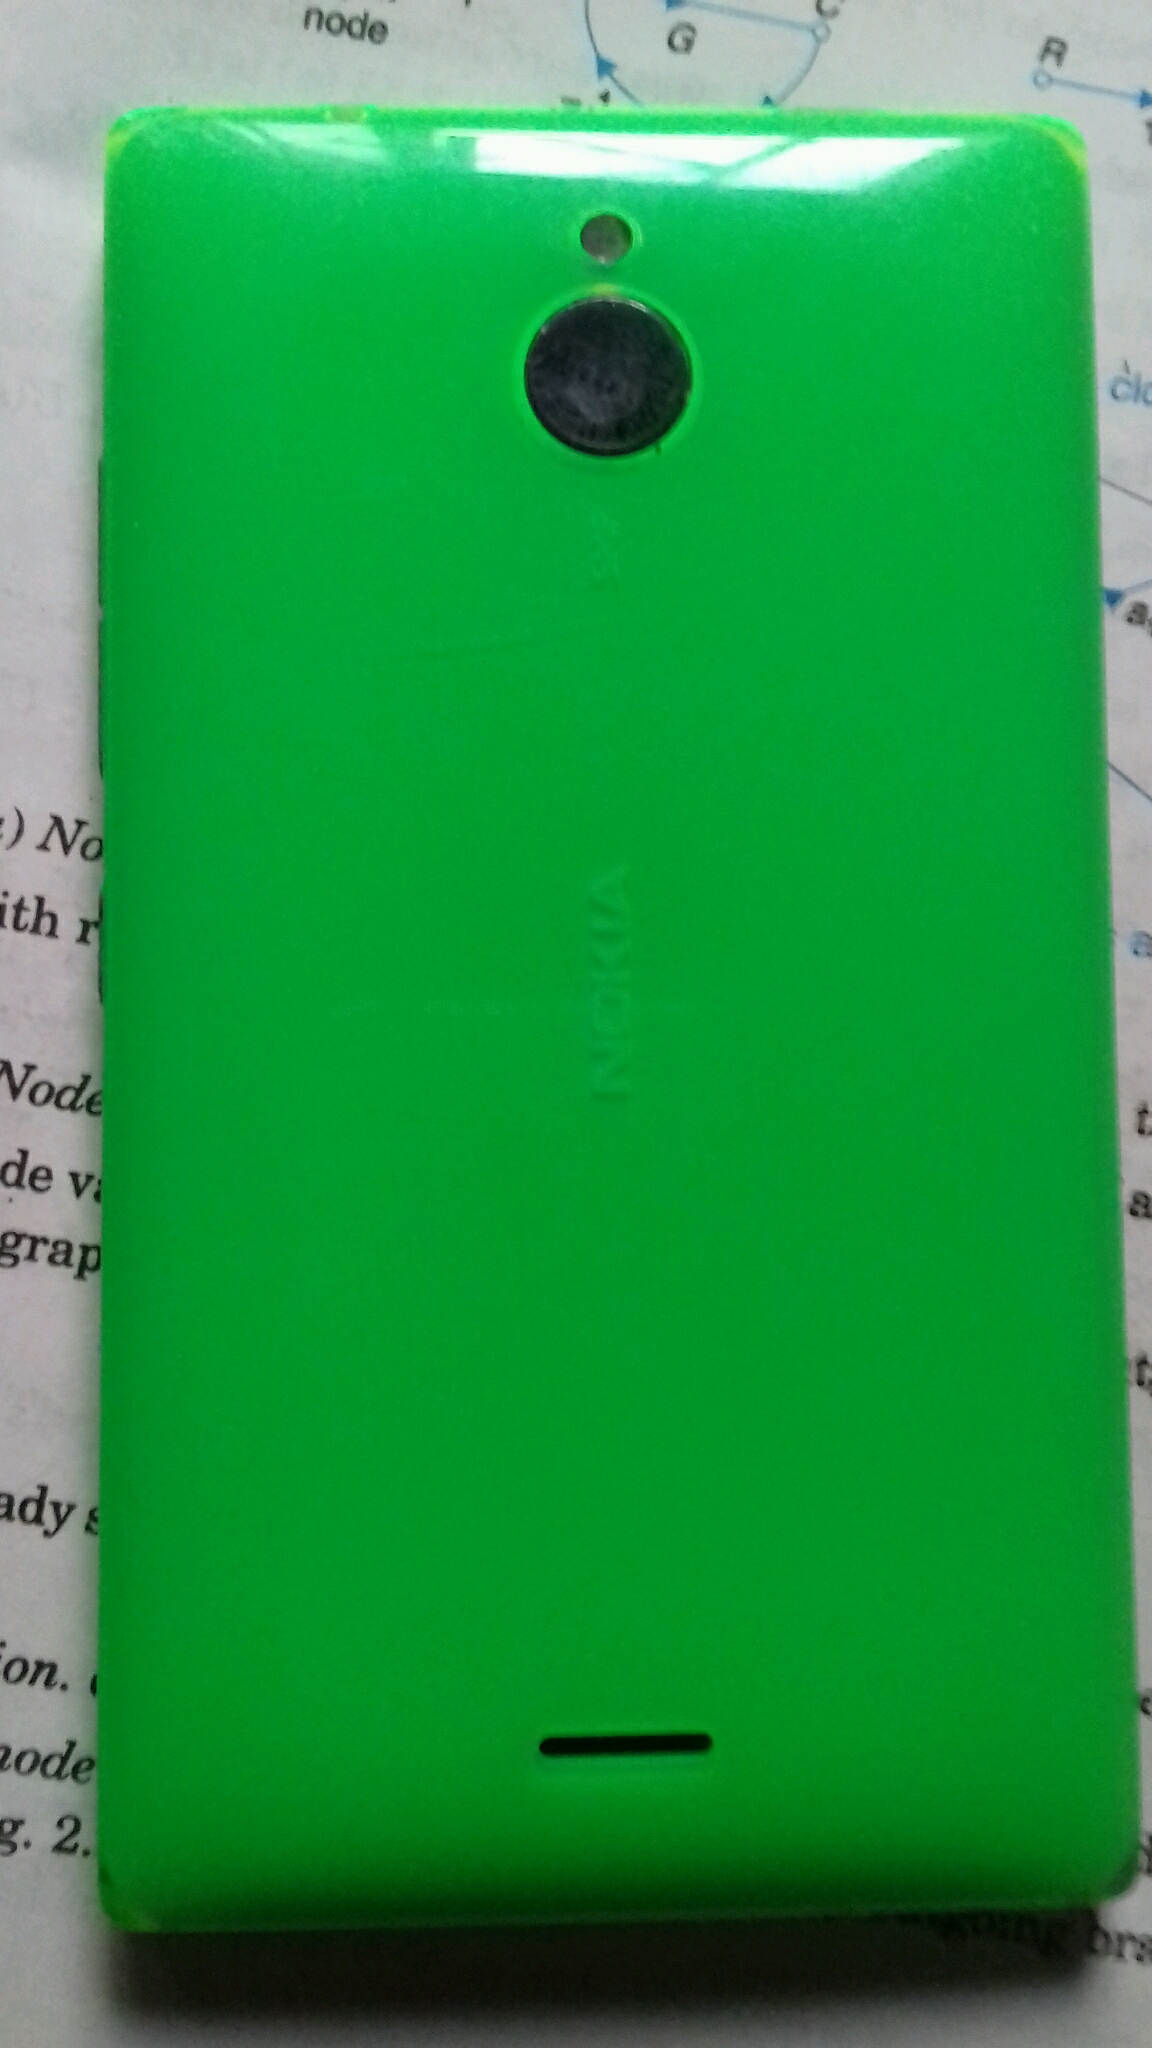 Super Phone Nokia X2 Dual Sim User Review 3no Quick Search Contact Like Samsung